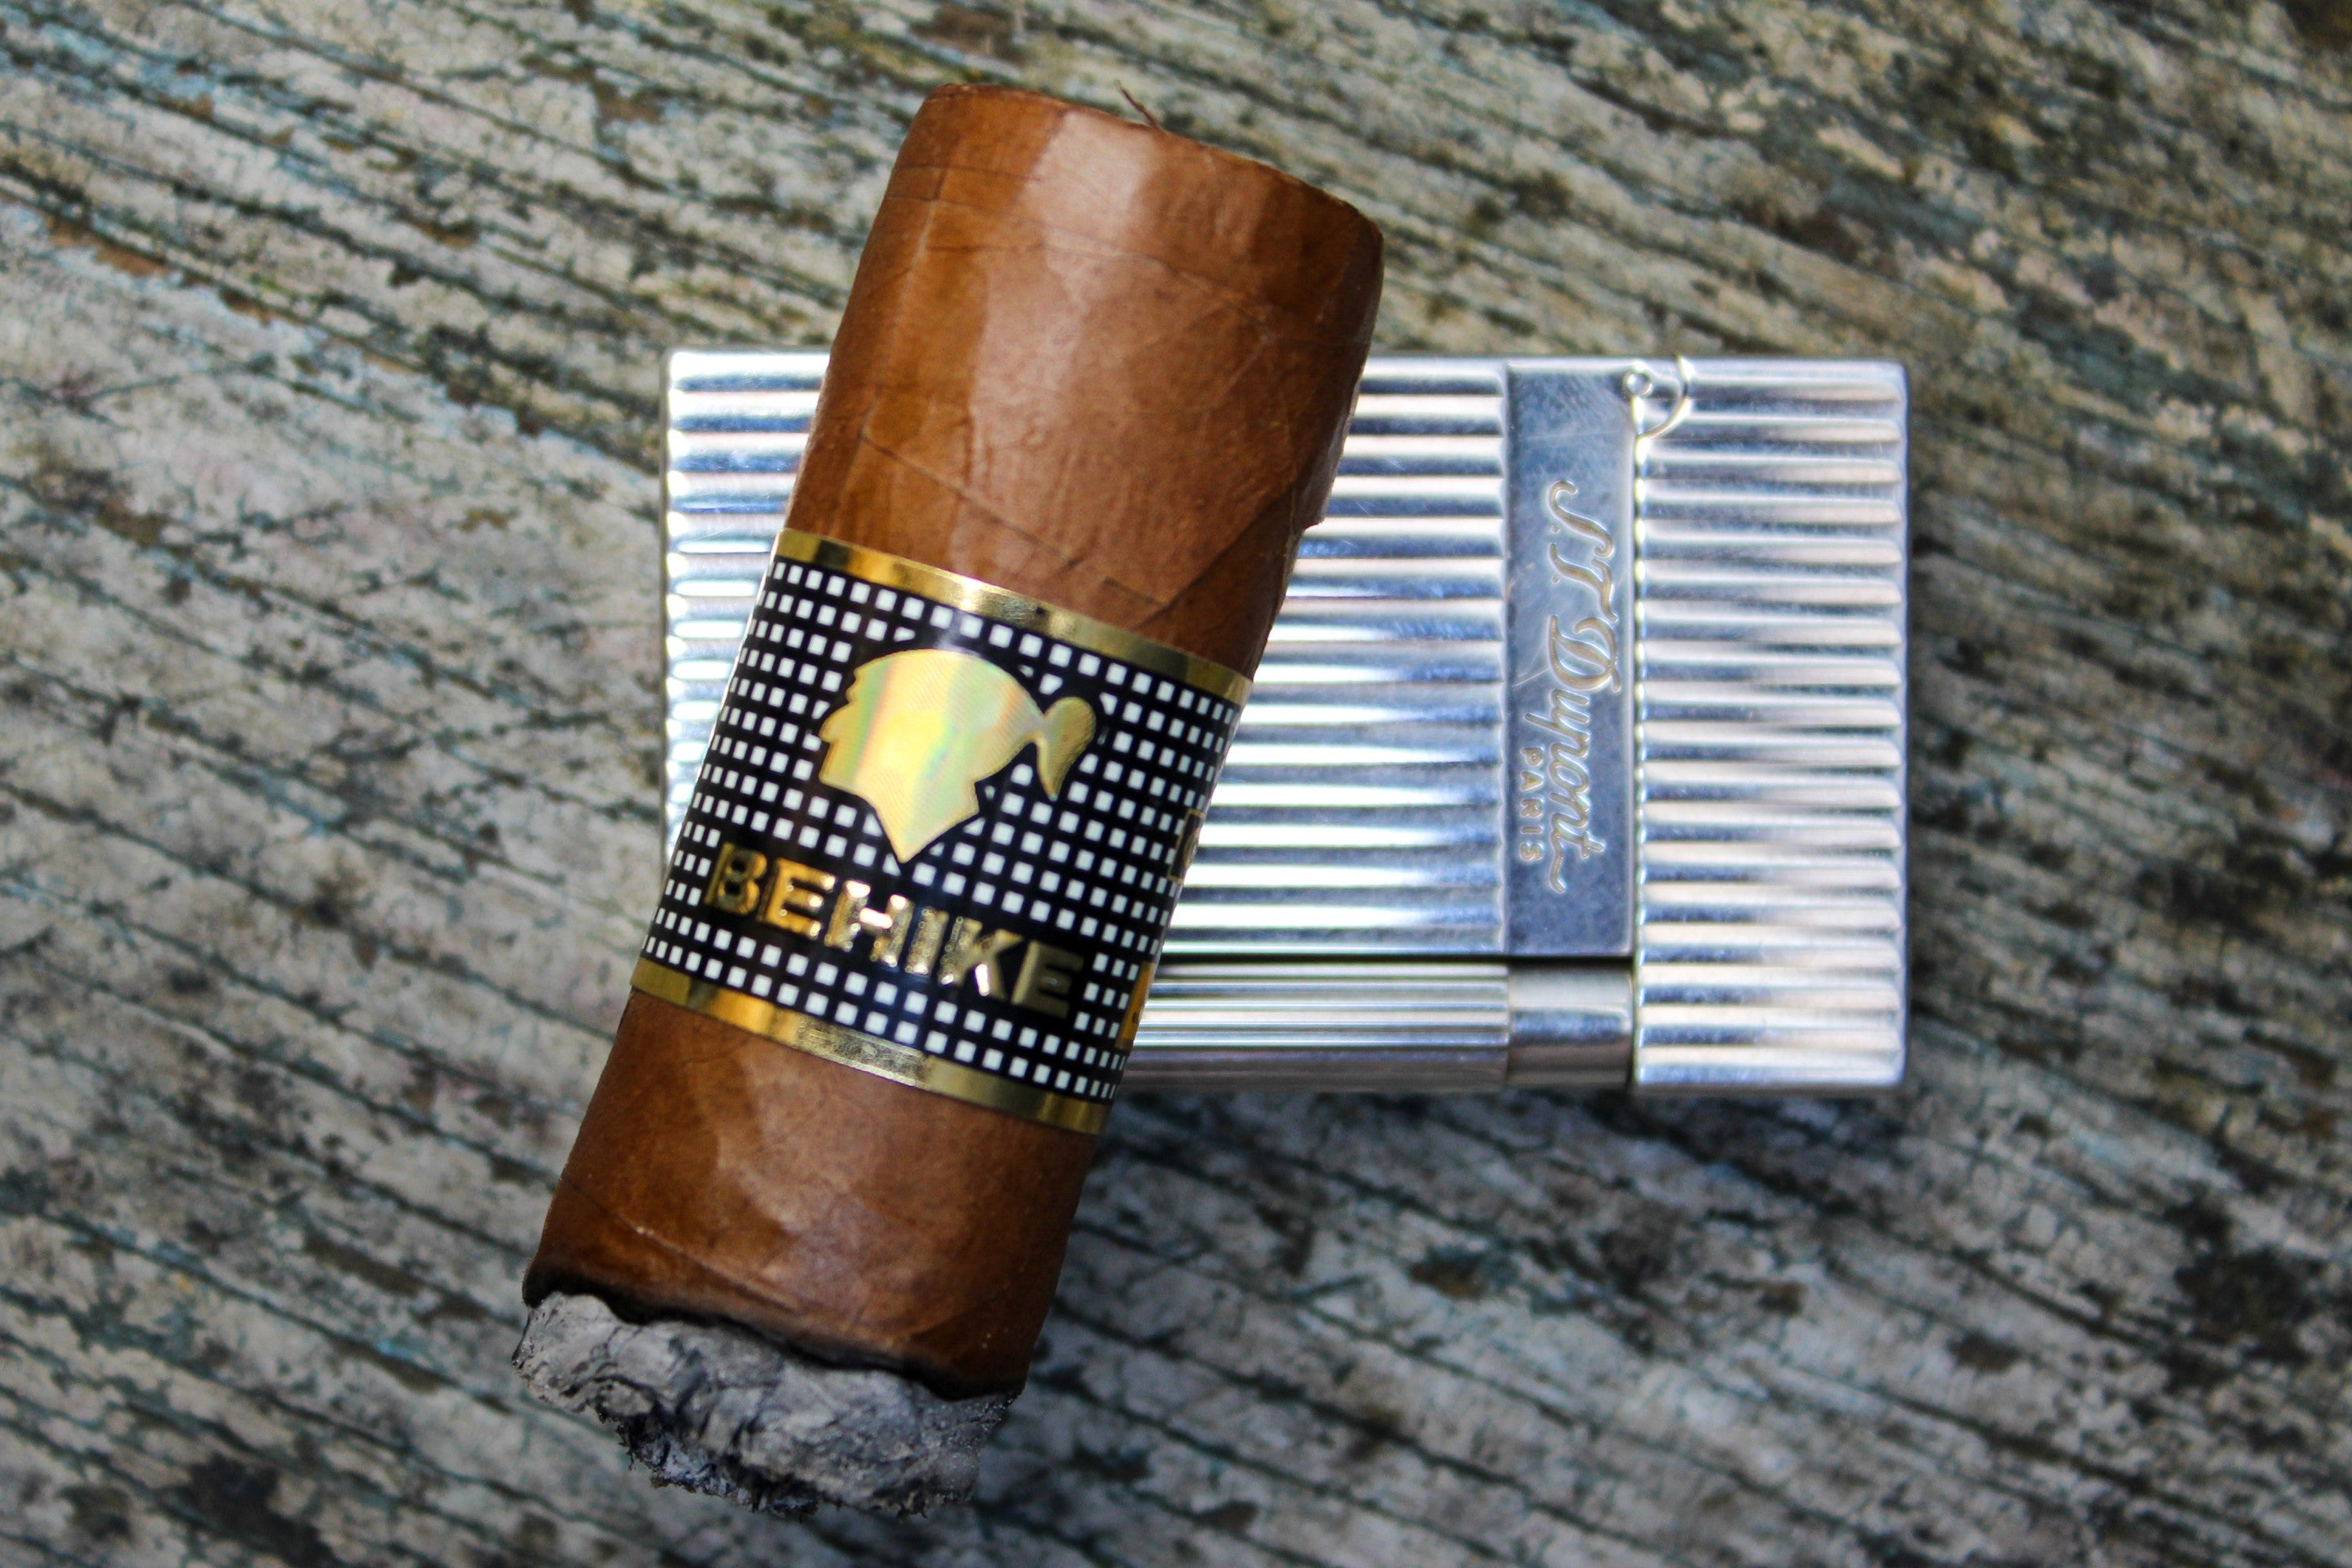 The end of the Cohiba Behike 56